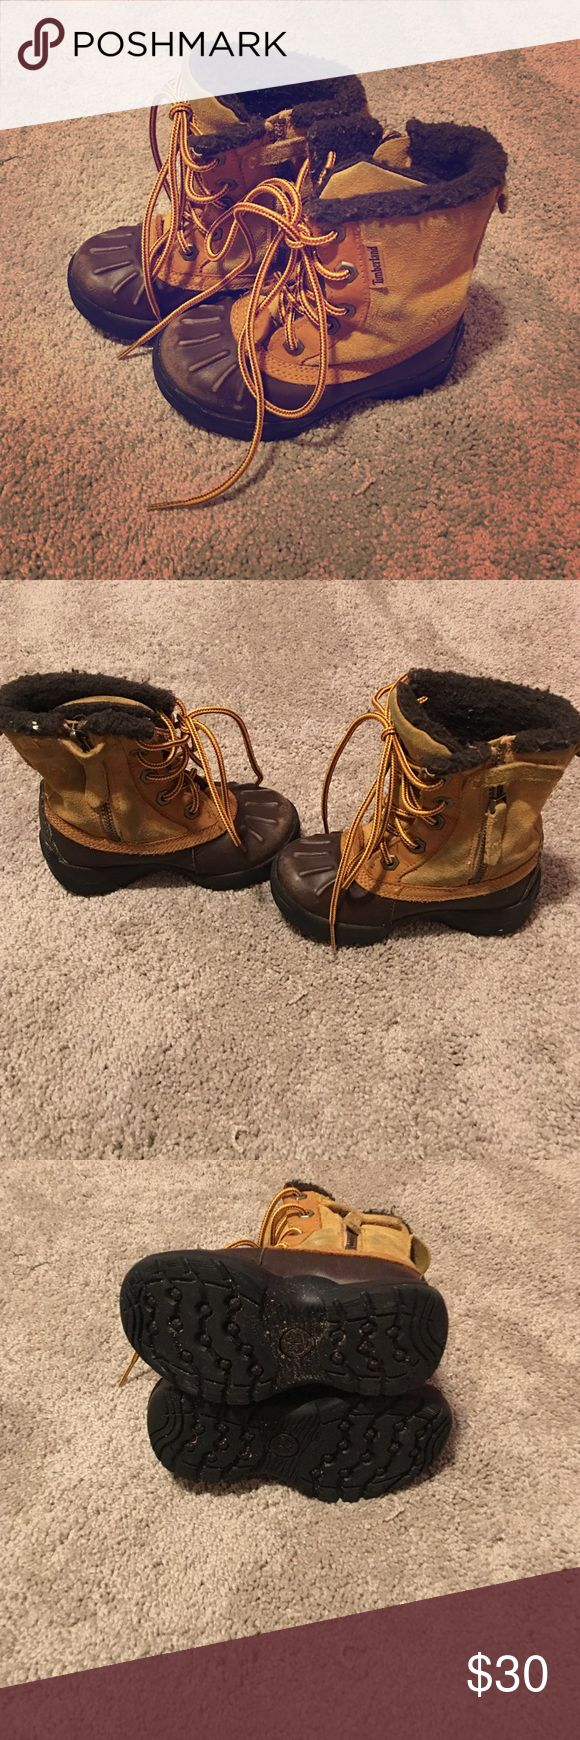 Size 7 Toddler Timberland Boots Good preowned condition, could use a light cleaning.  Some scuffing on toes.  Soles are in excellent condition.  Toes have some scuffing, could use a polish.  New laces.  Will consider reasonable offers. Timberland Shoes Boots